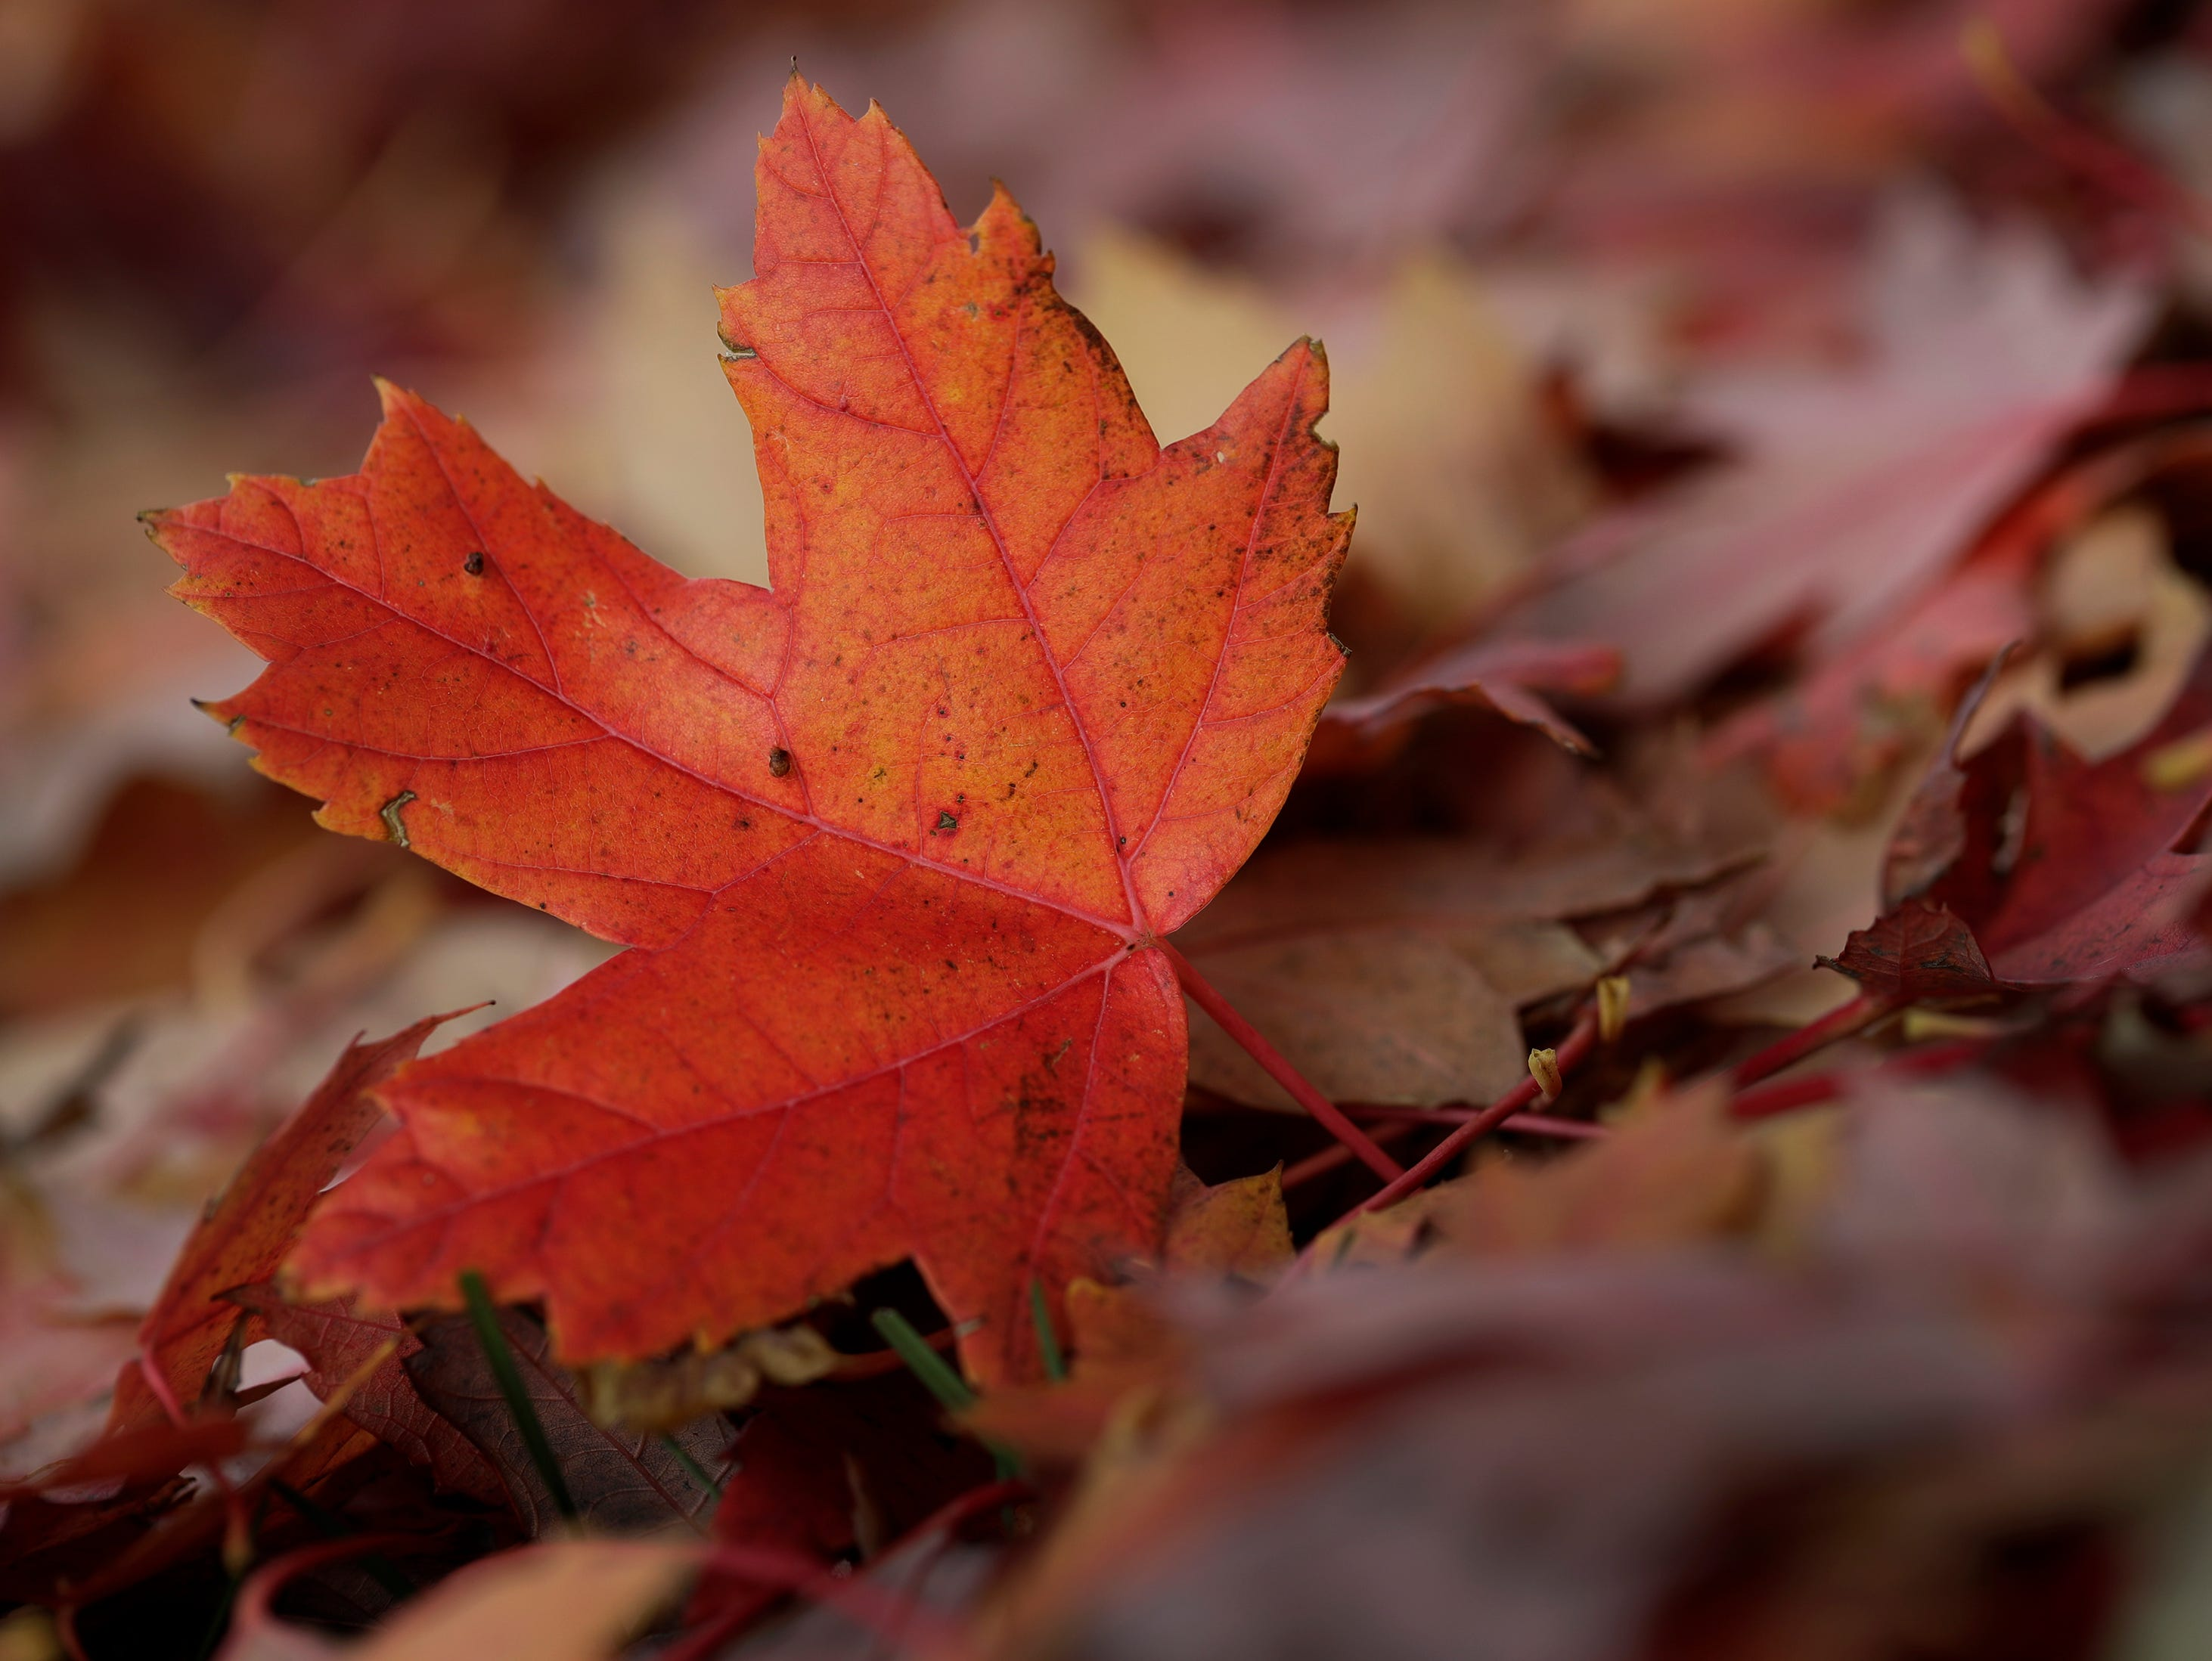 A maple leaf lies on it's edge Monday, October 29, 2018, in Appleton, Wis. 